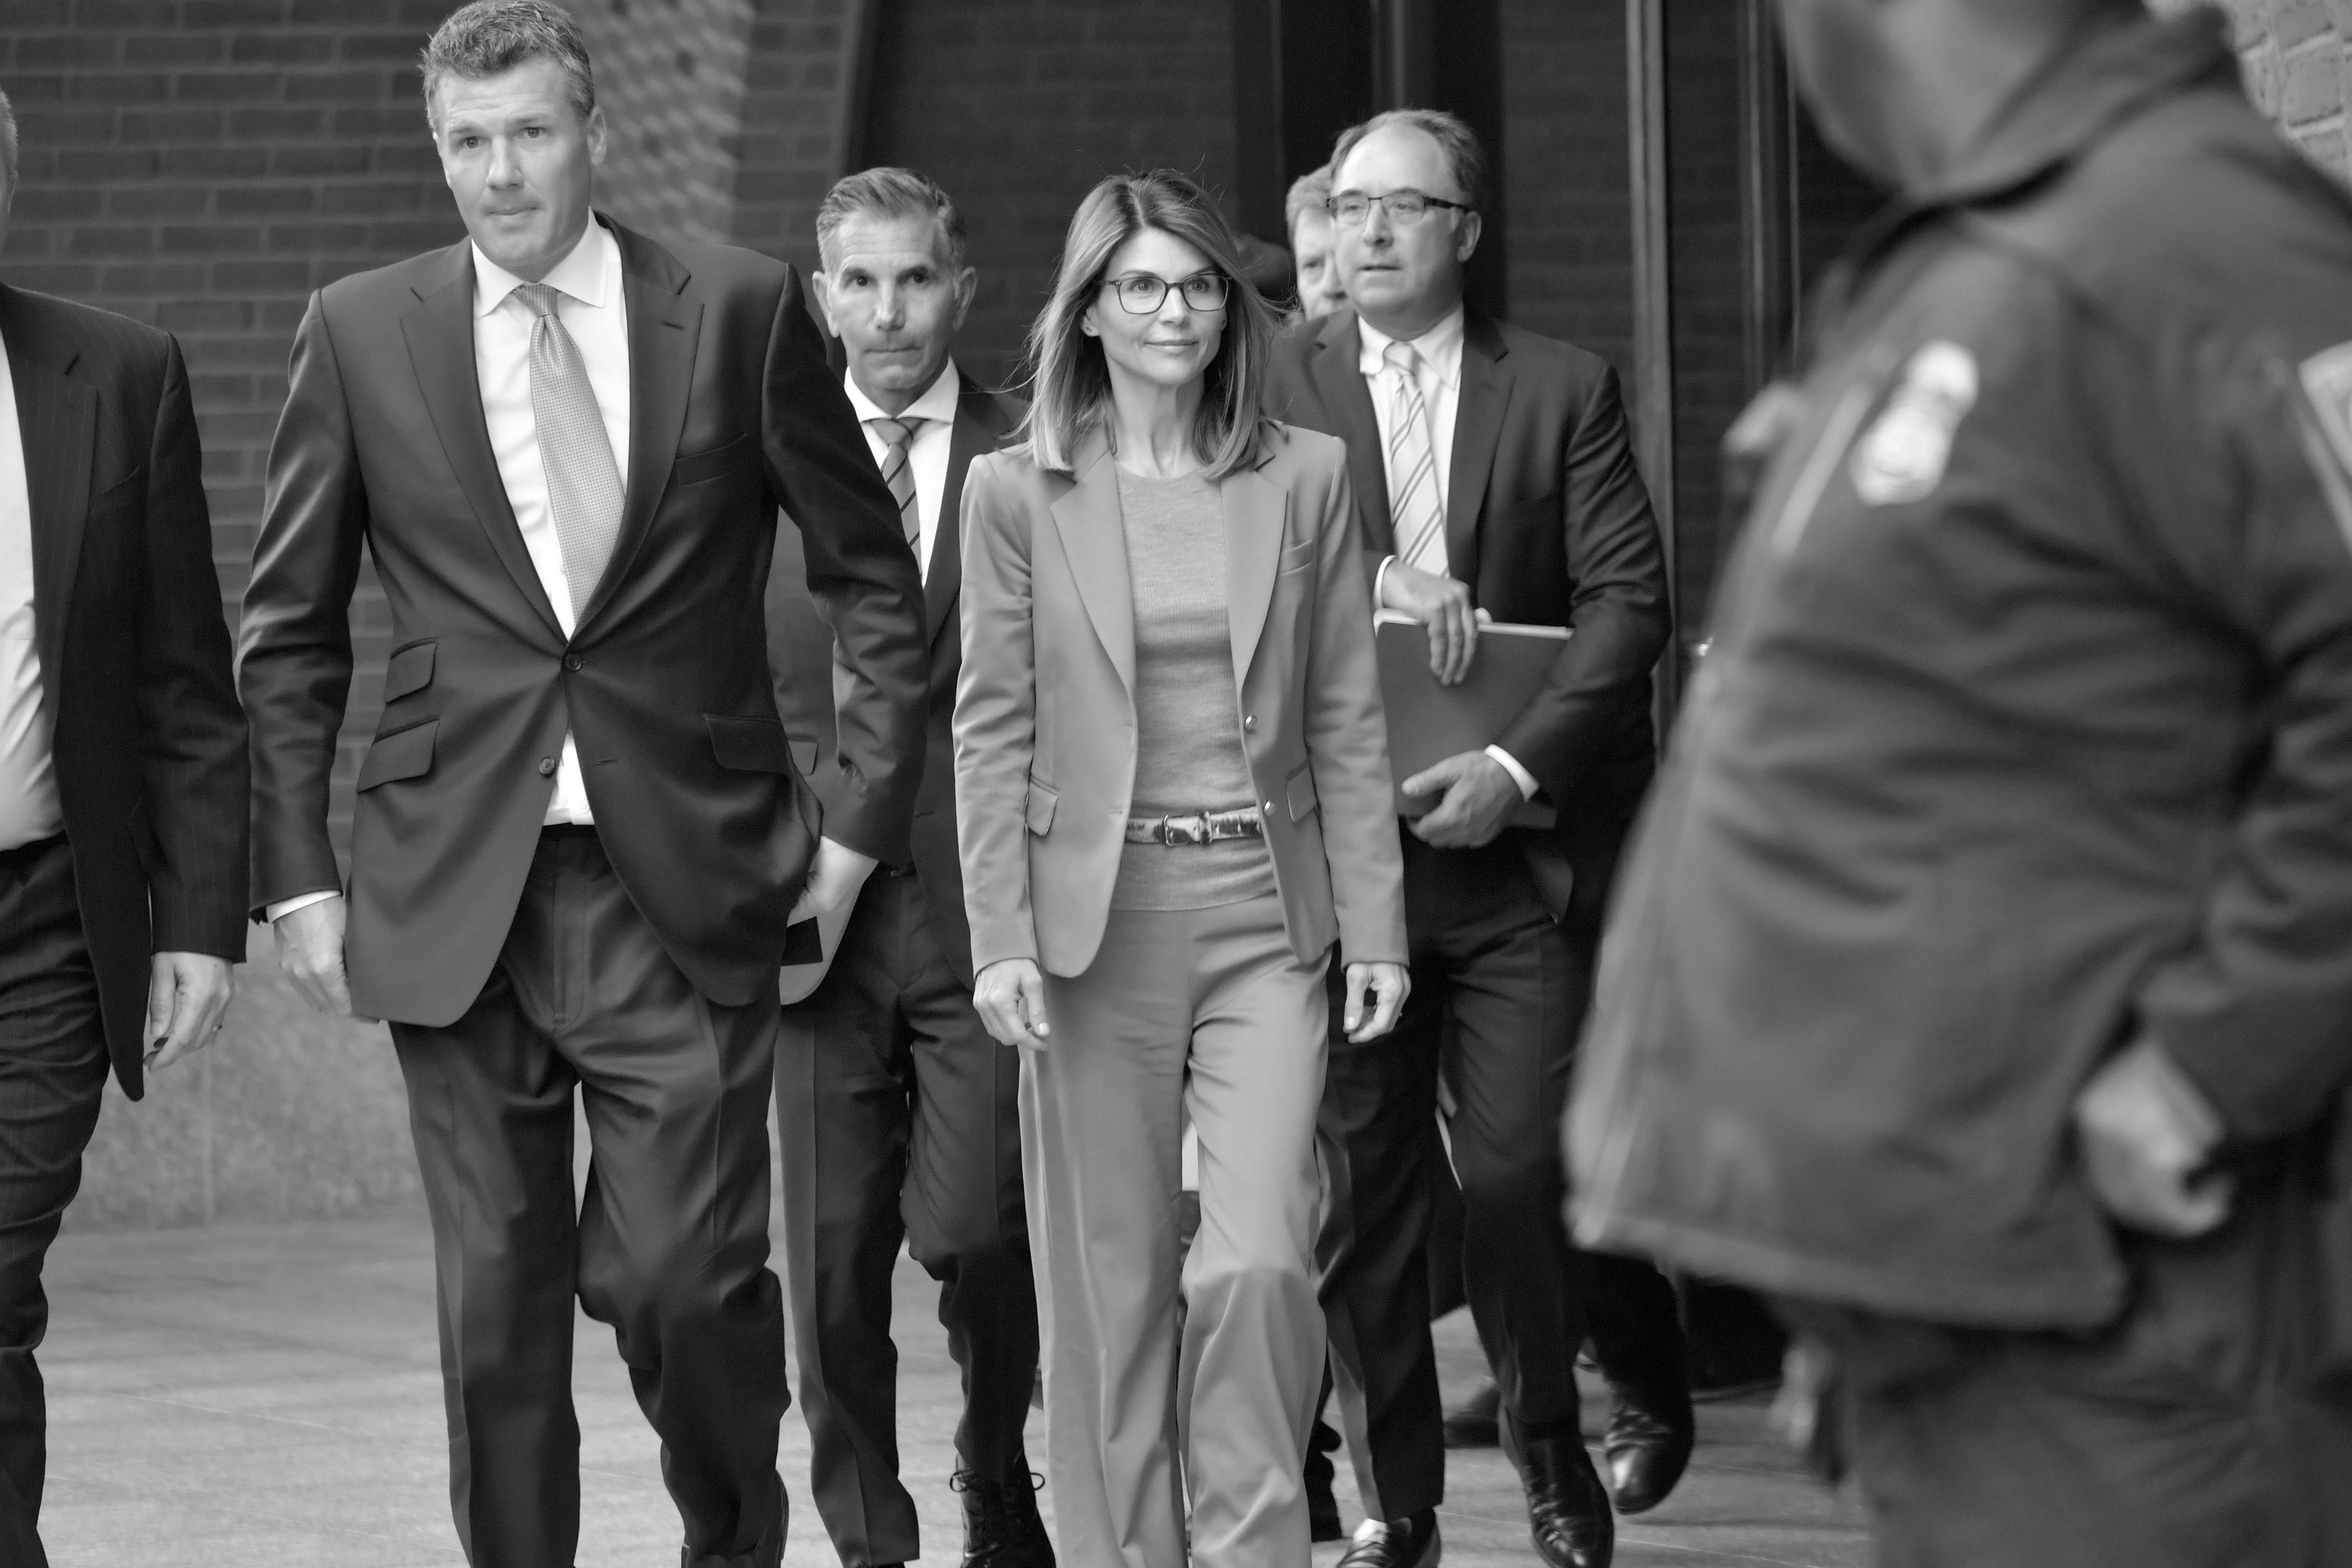 Lori Loughlin Is Concerned About Her Trial After Felicity Huffman Sentencing